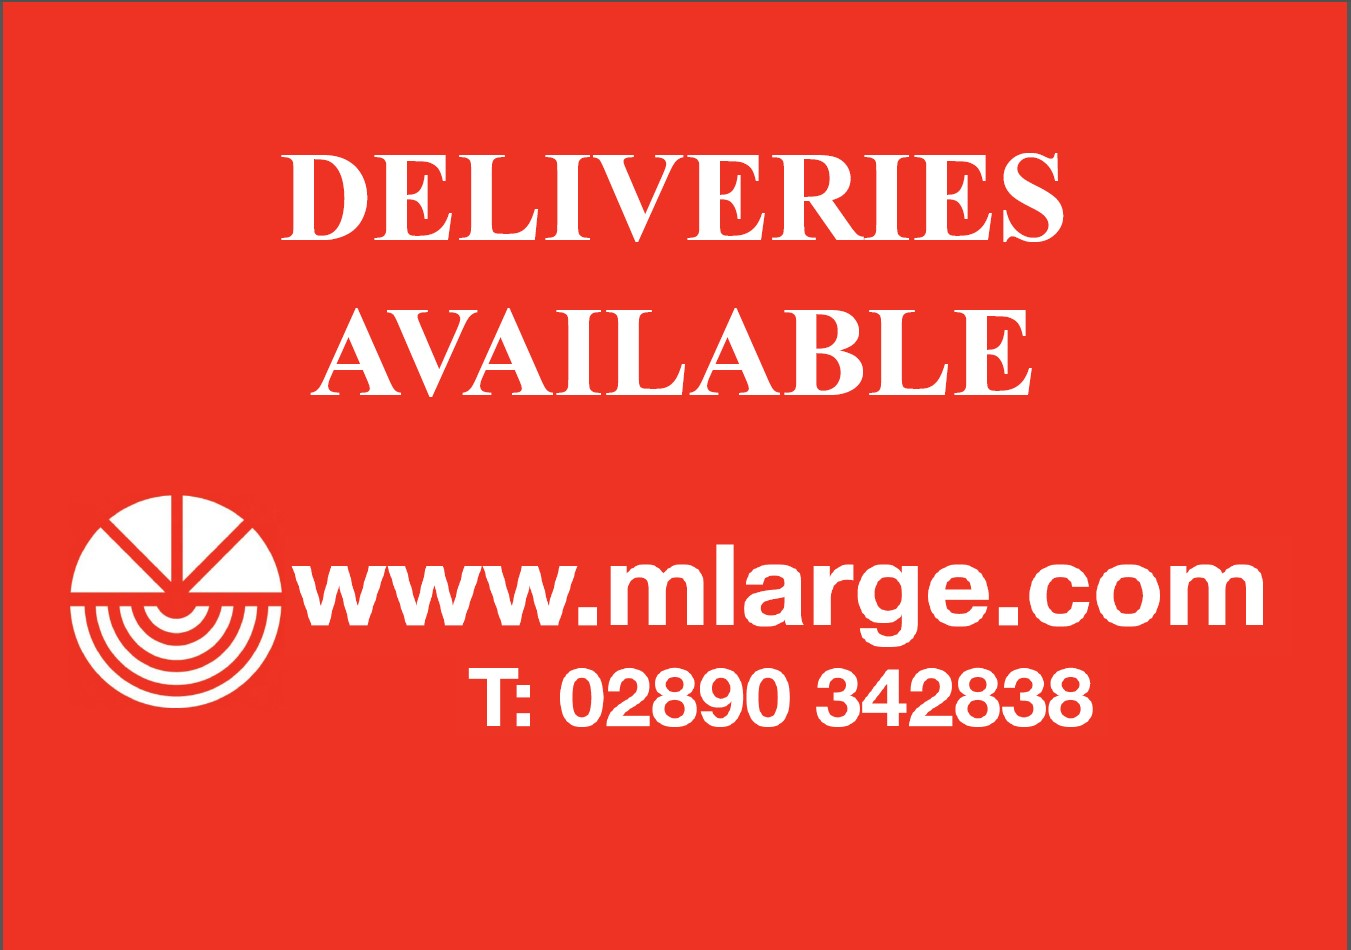 Deliveries available